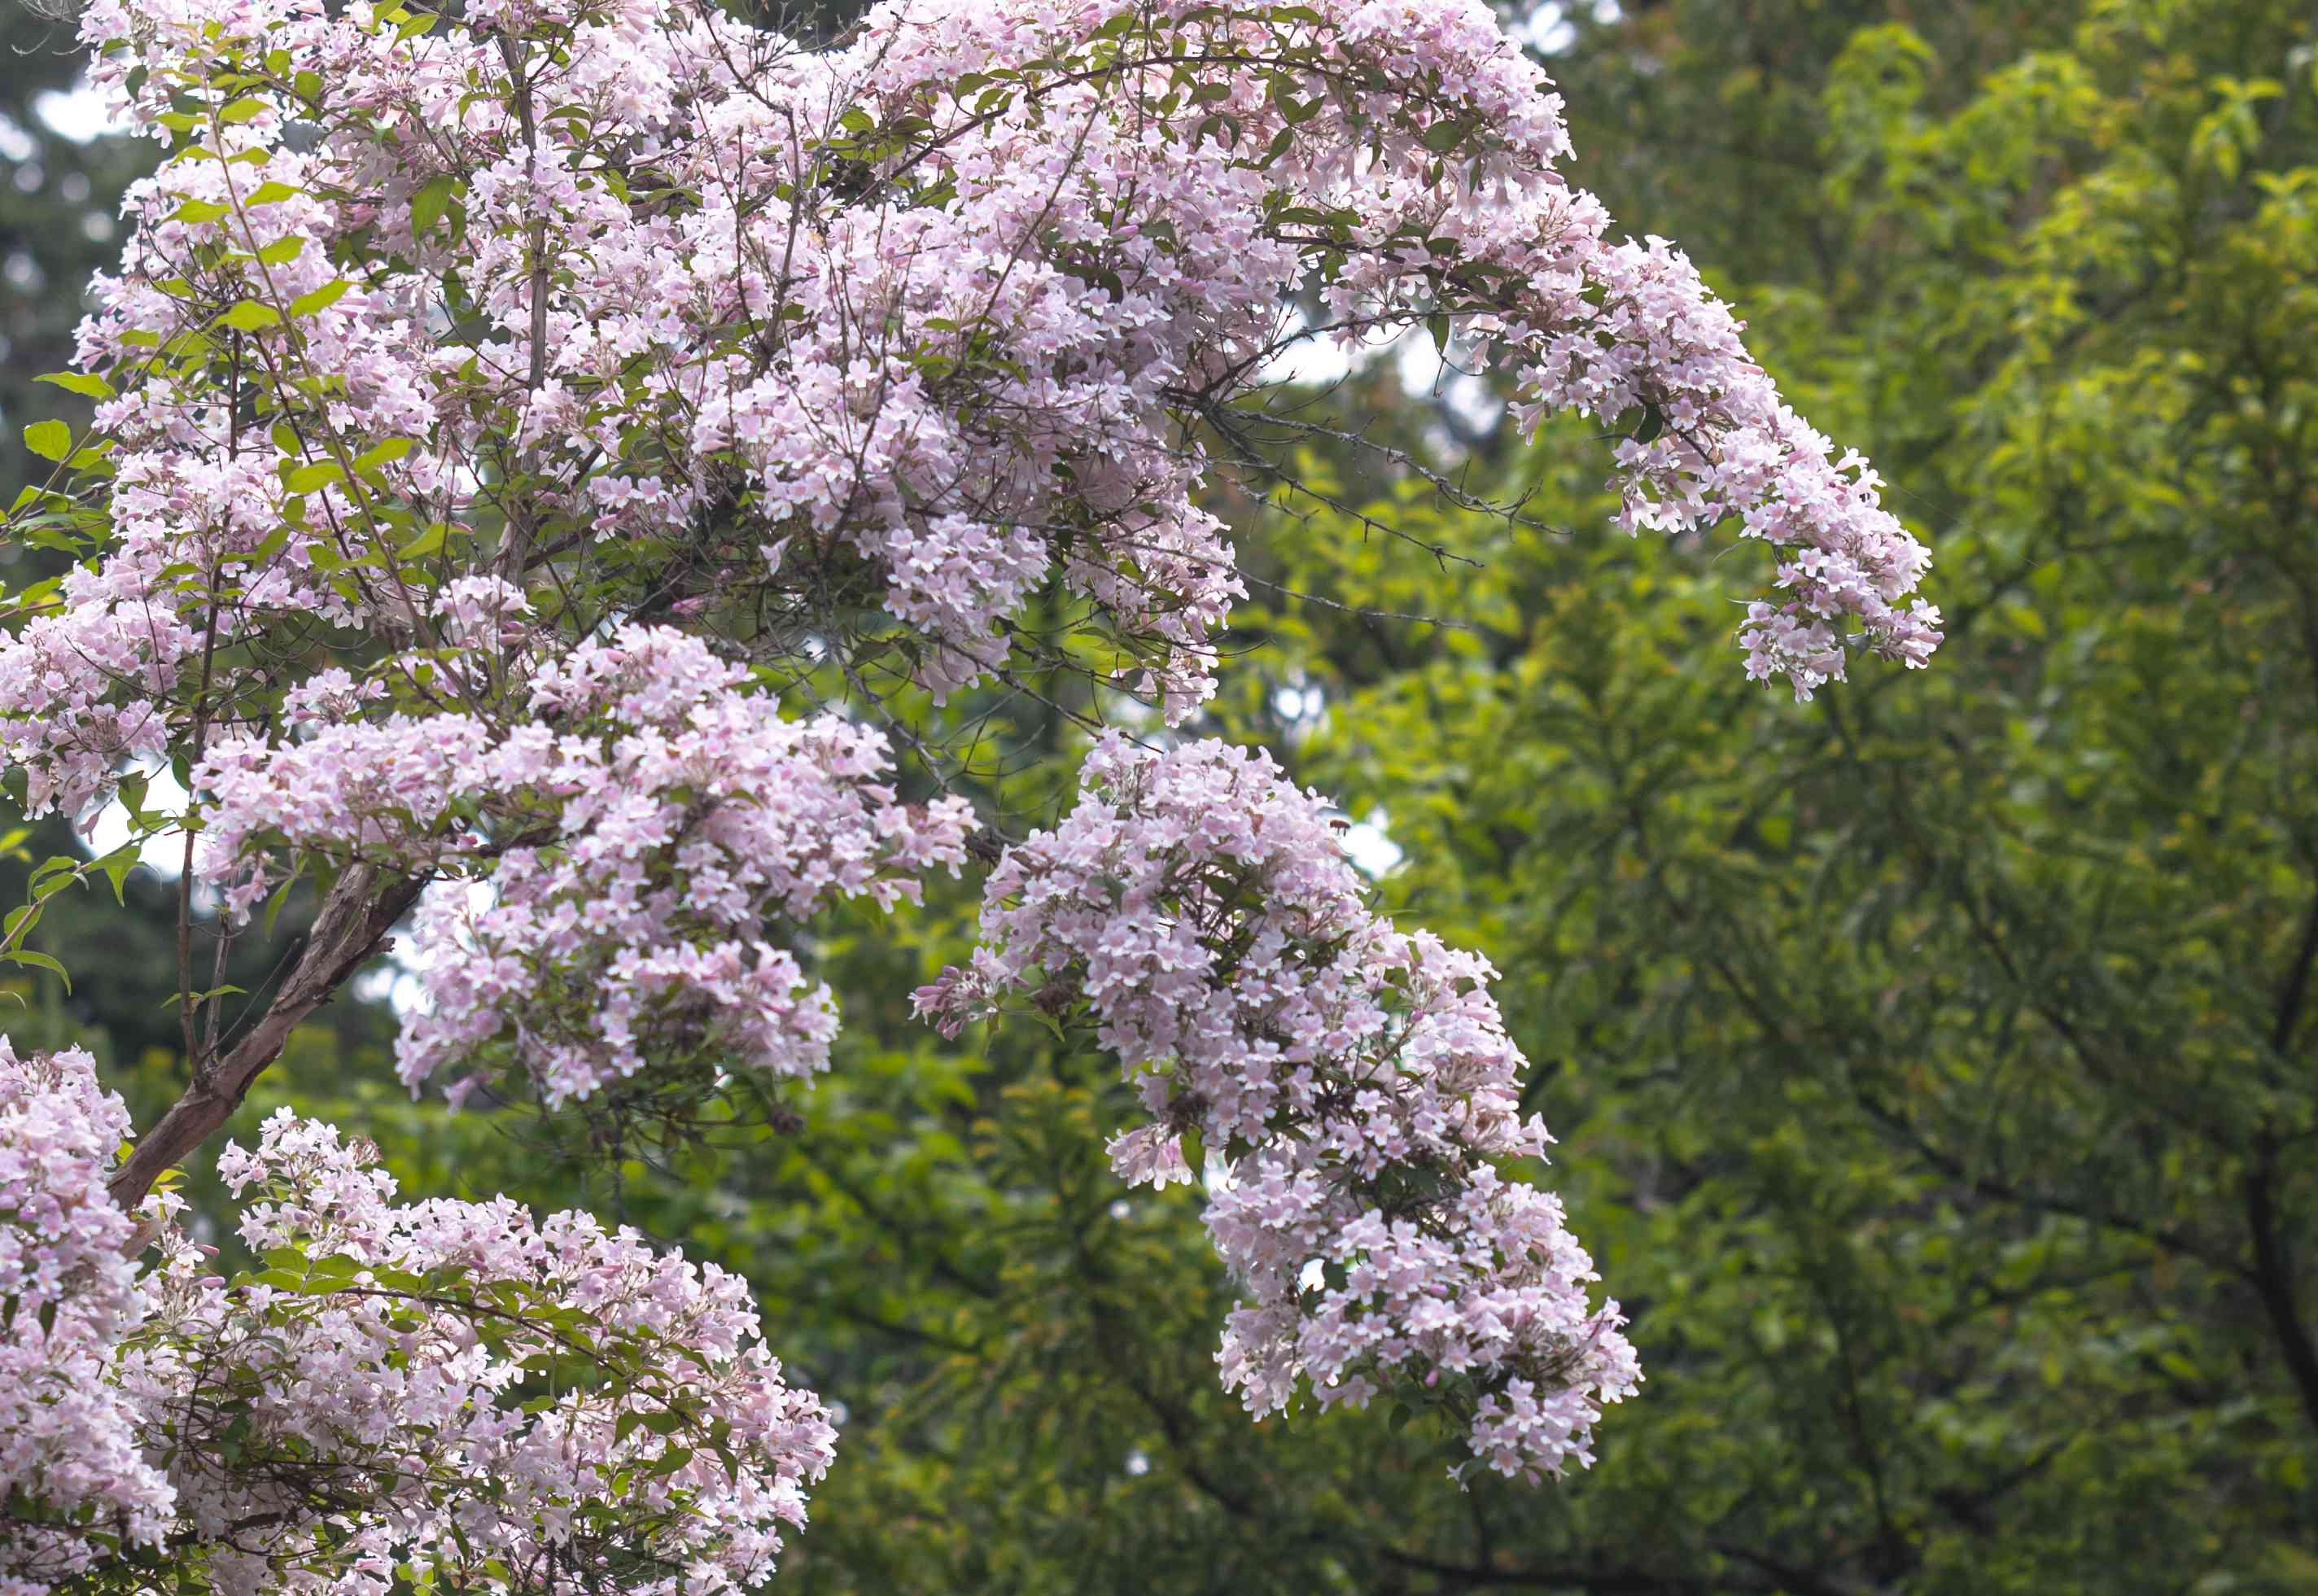 Beauty bush with small pink flowers clustered over drooping branches with trees in background